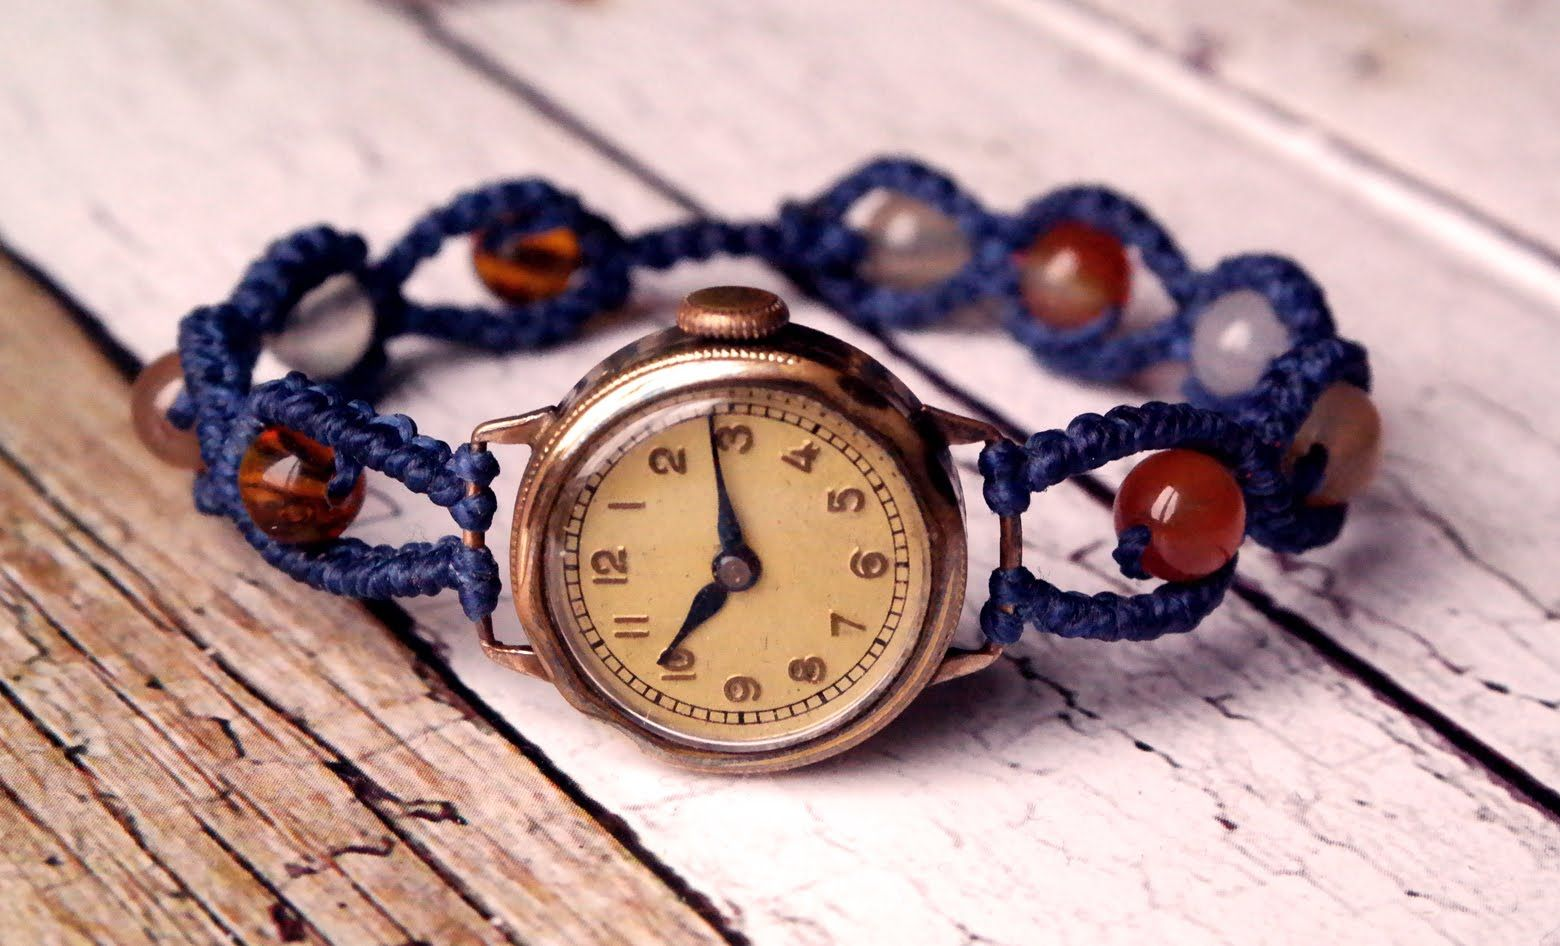 Diy Friendship Watch Band Diy Watch Band Friendship Bracelets